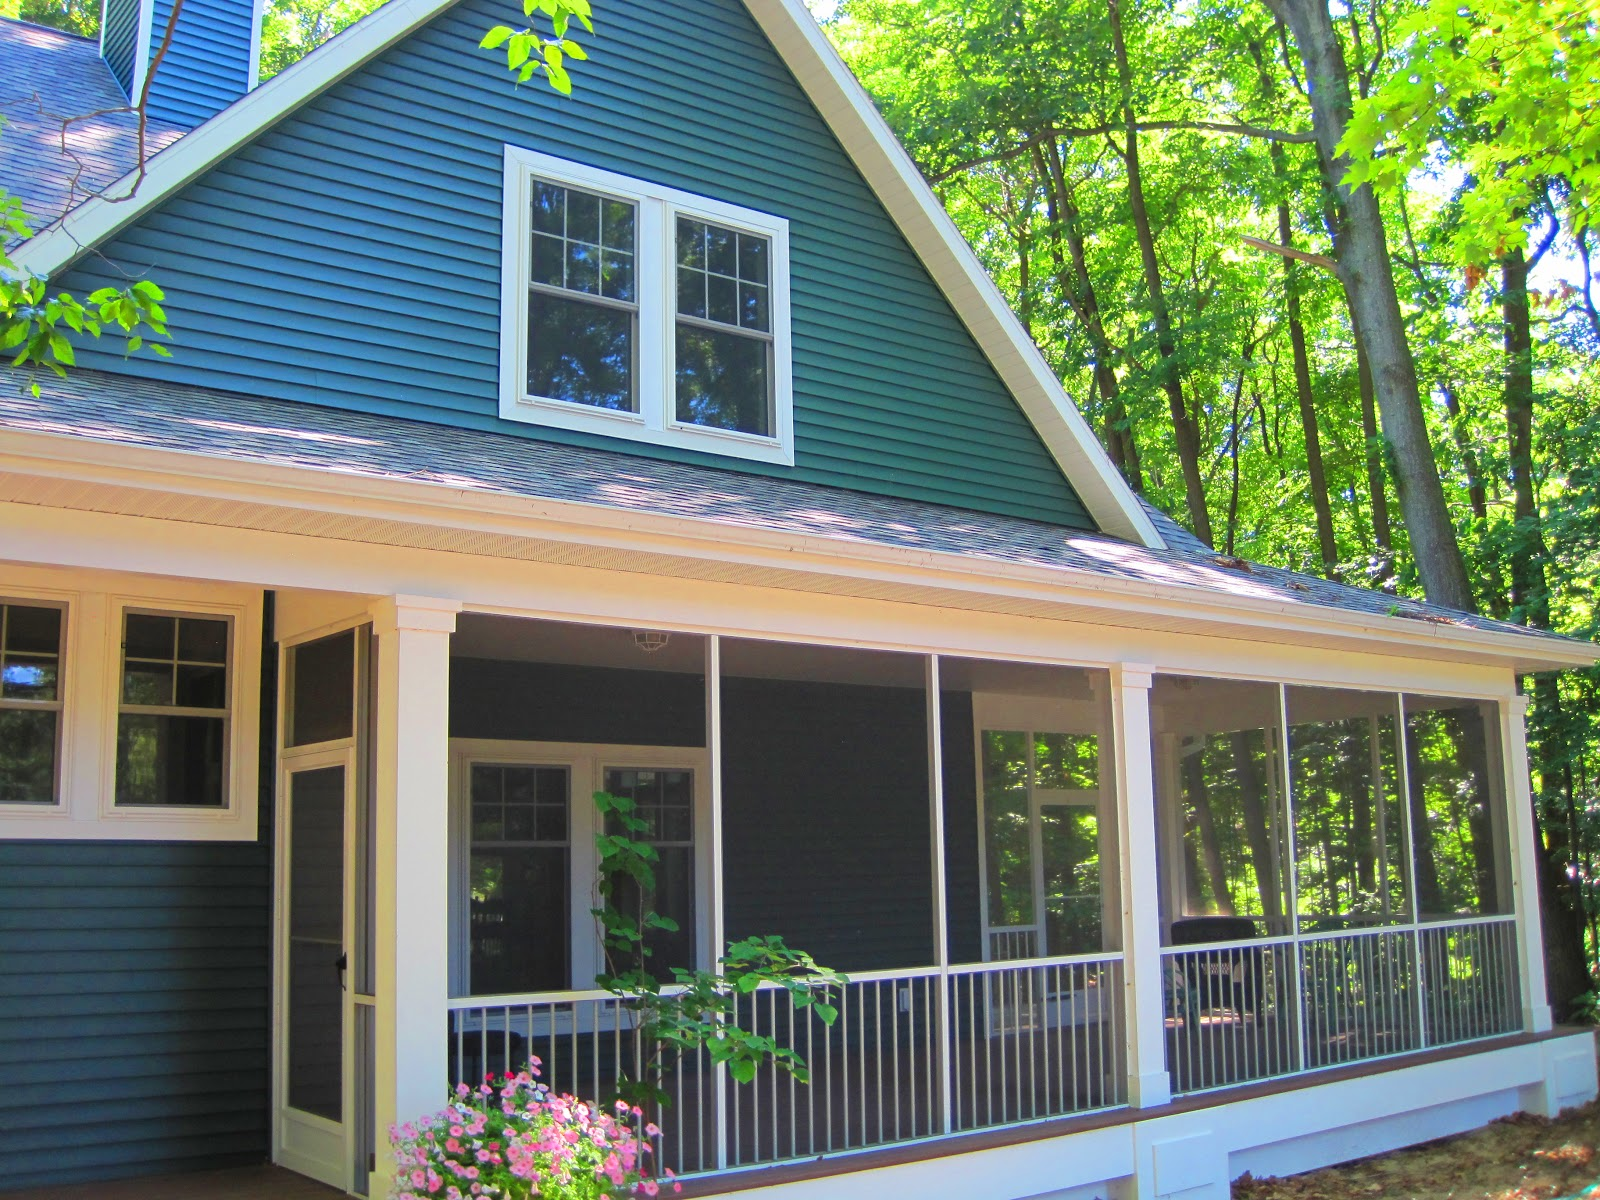 Waterfront luxuryhomes 6676 indian pipe cir holland mi 49423 for Tiny house holland michigan